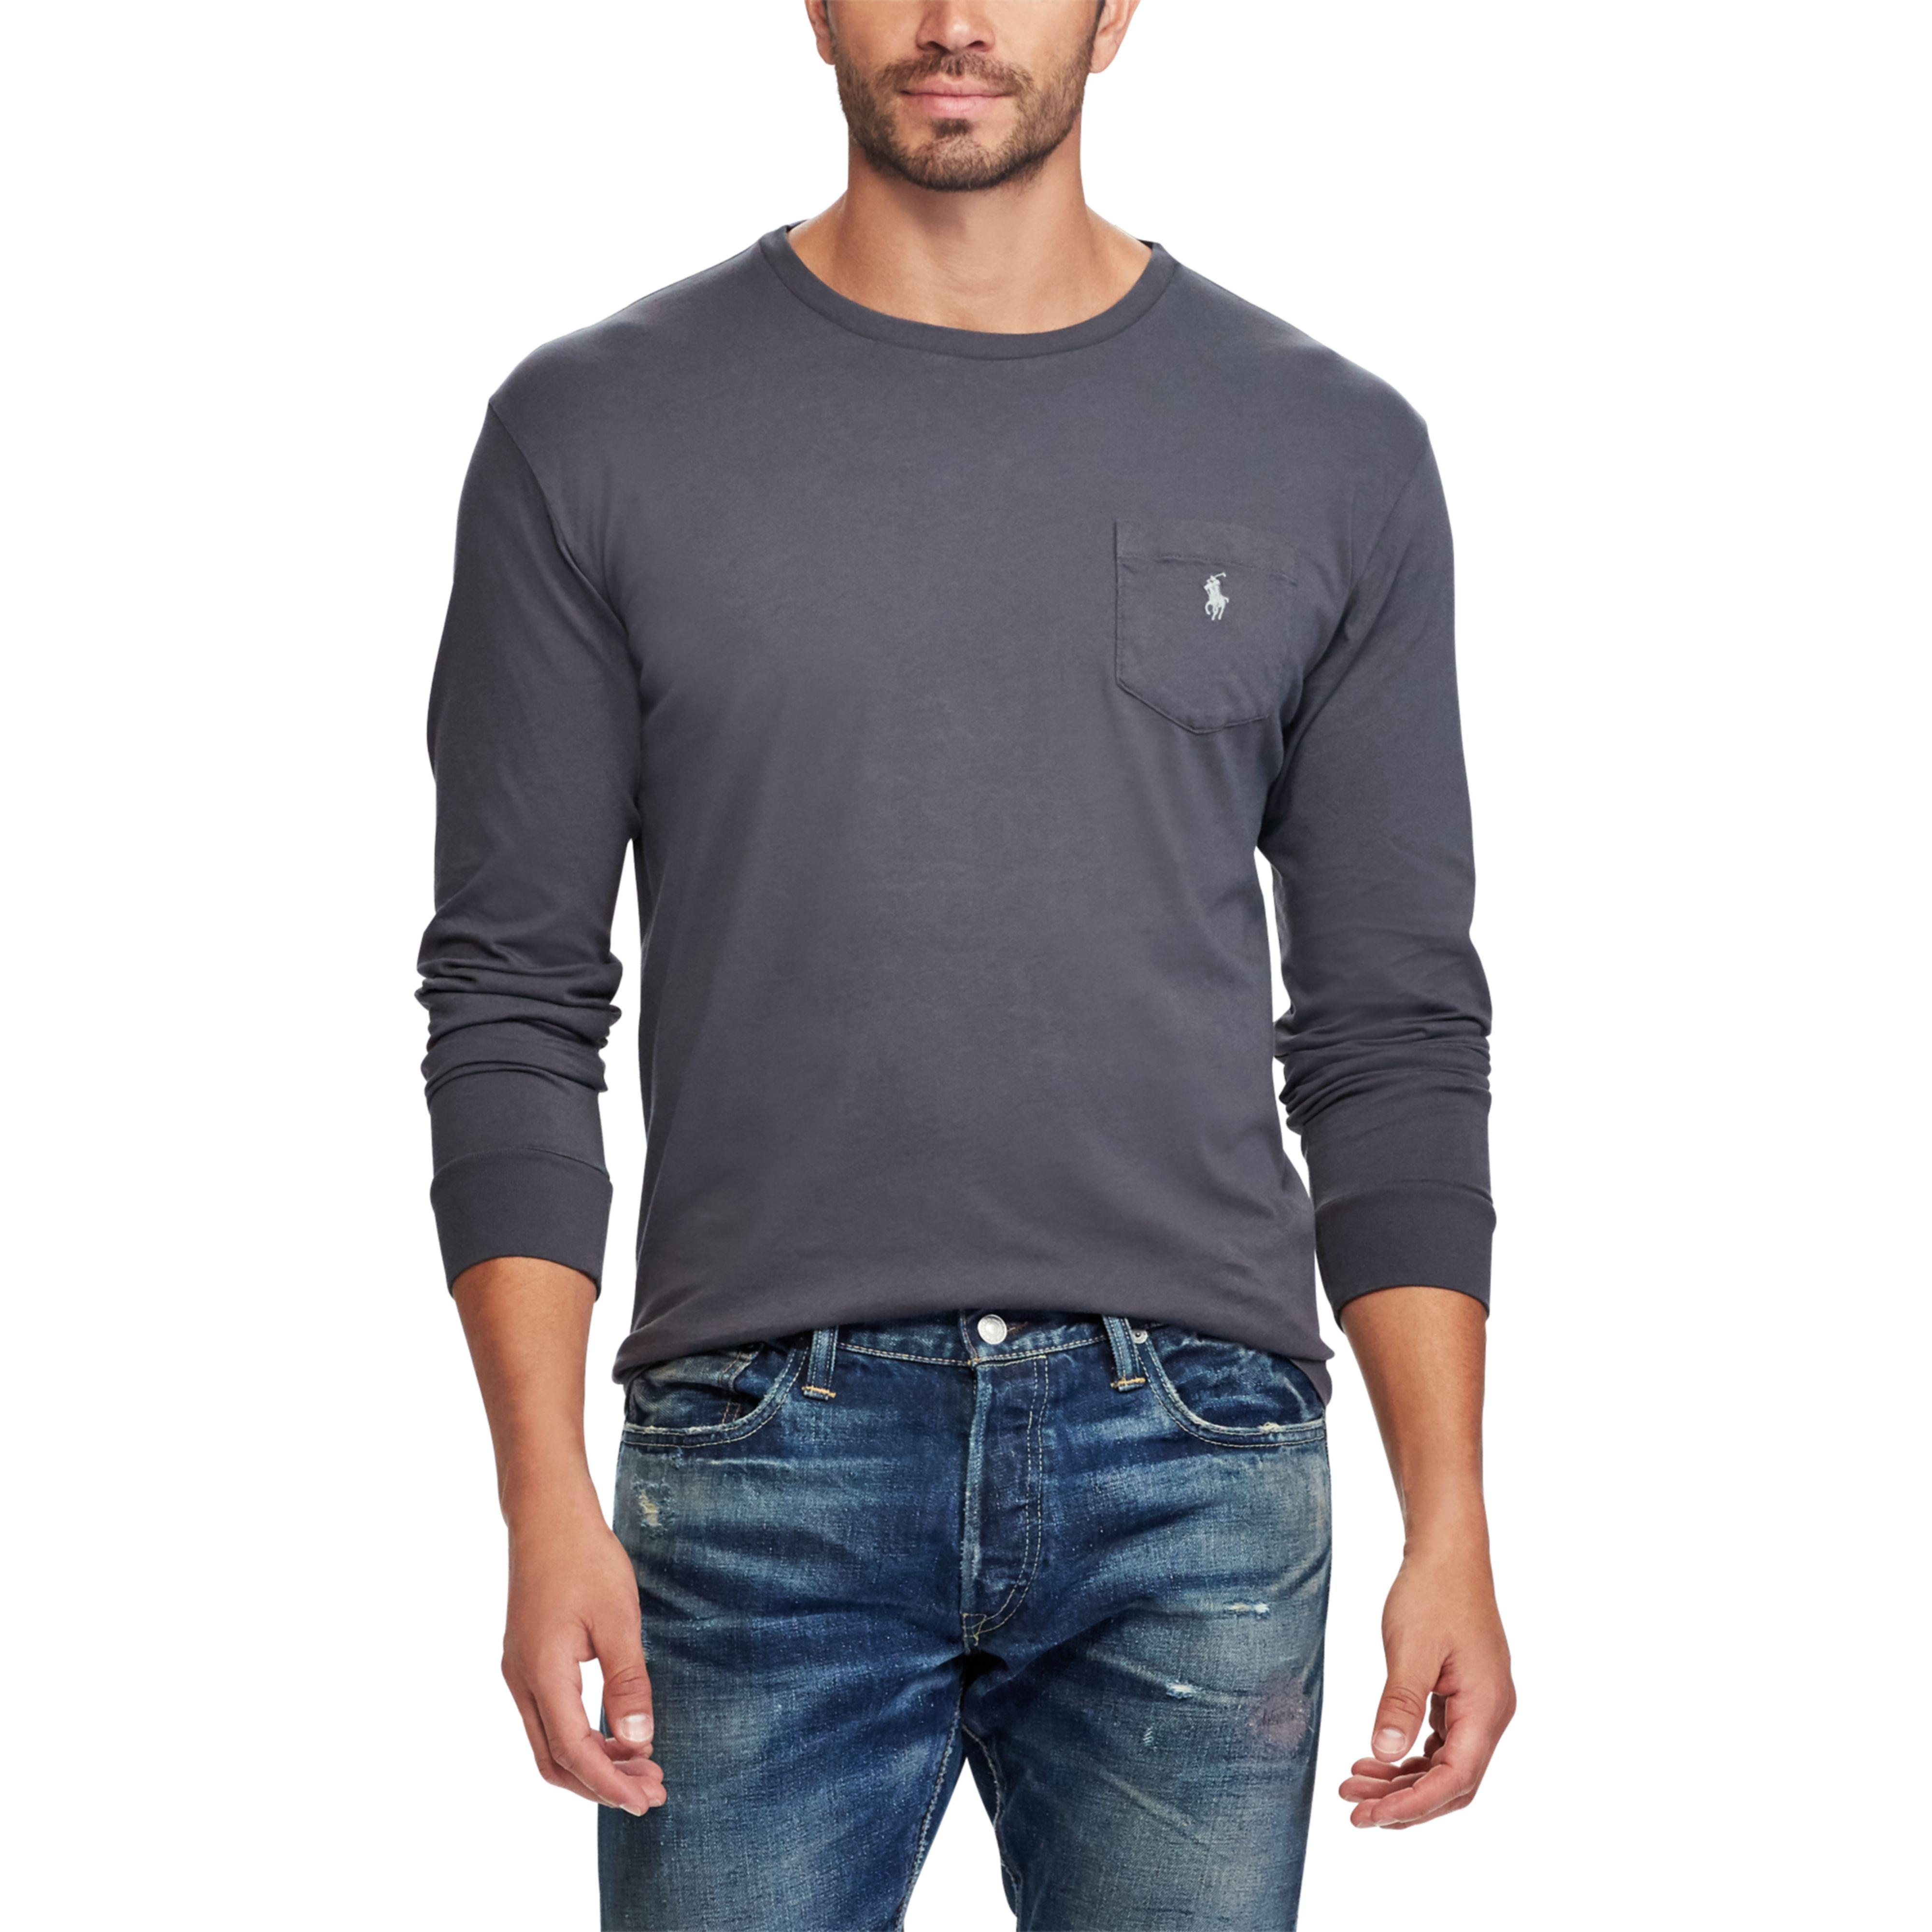 adf658aa0fdc ... shop lyst polo ralph lauren classic fit cotton t shirt in gray for men  e18eb ffcb3